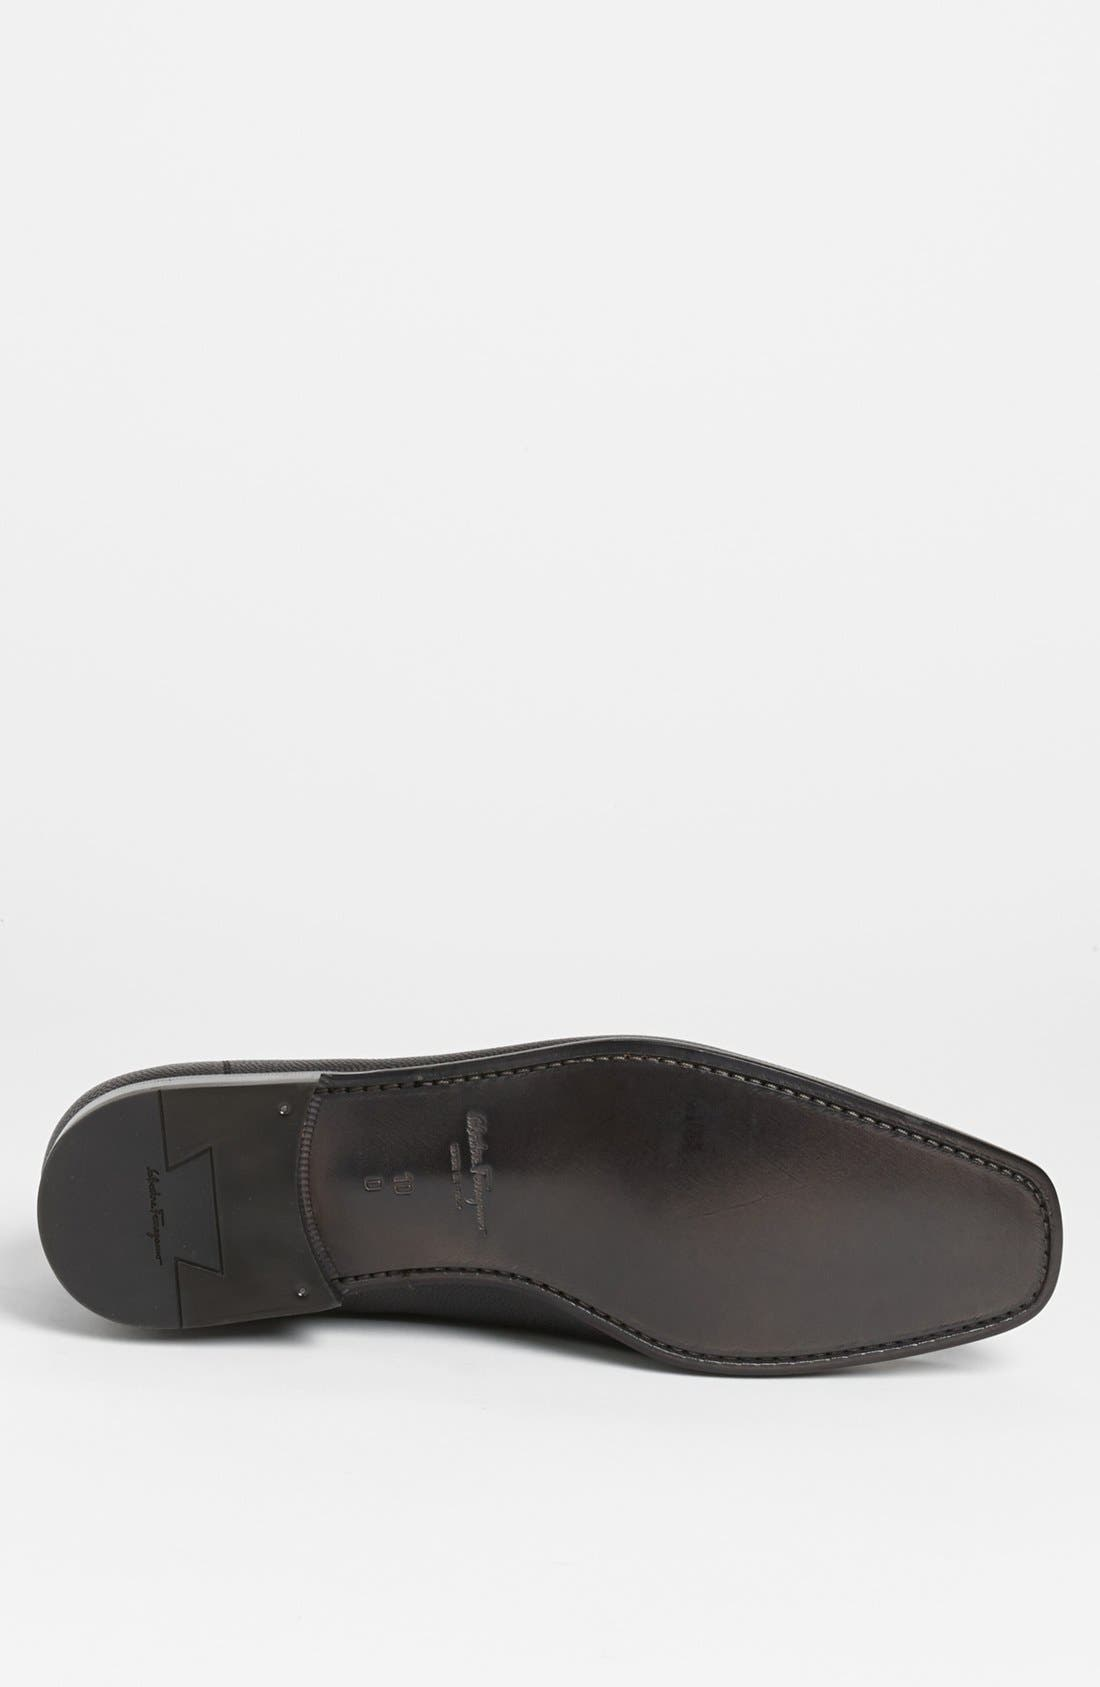 Alternate Image 4  - Salvatore Ferragamo 'Svezia' Loafer